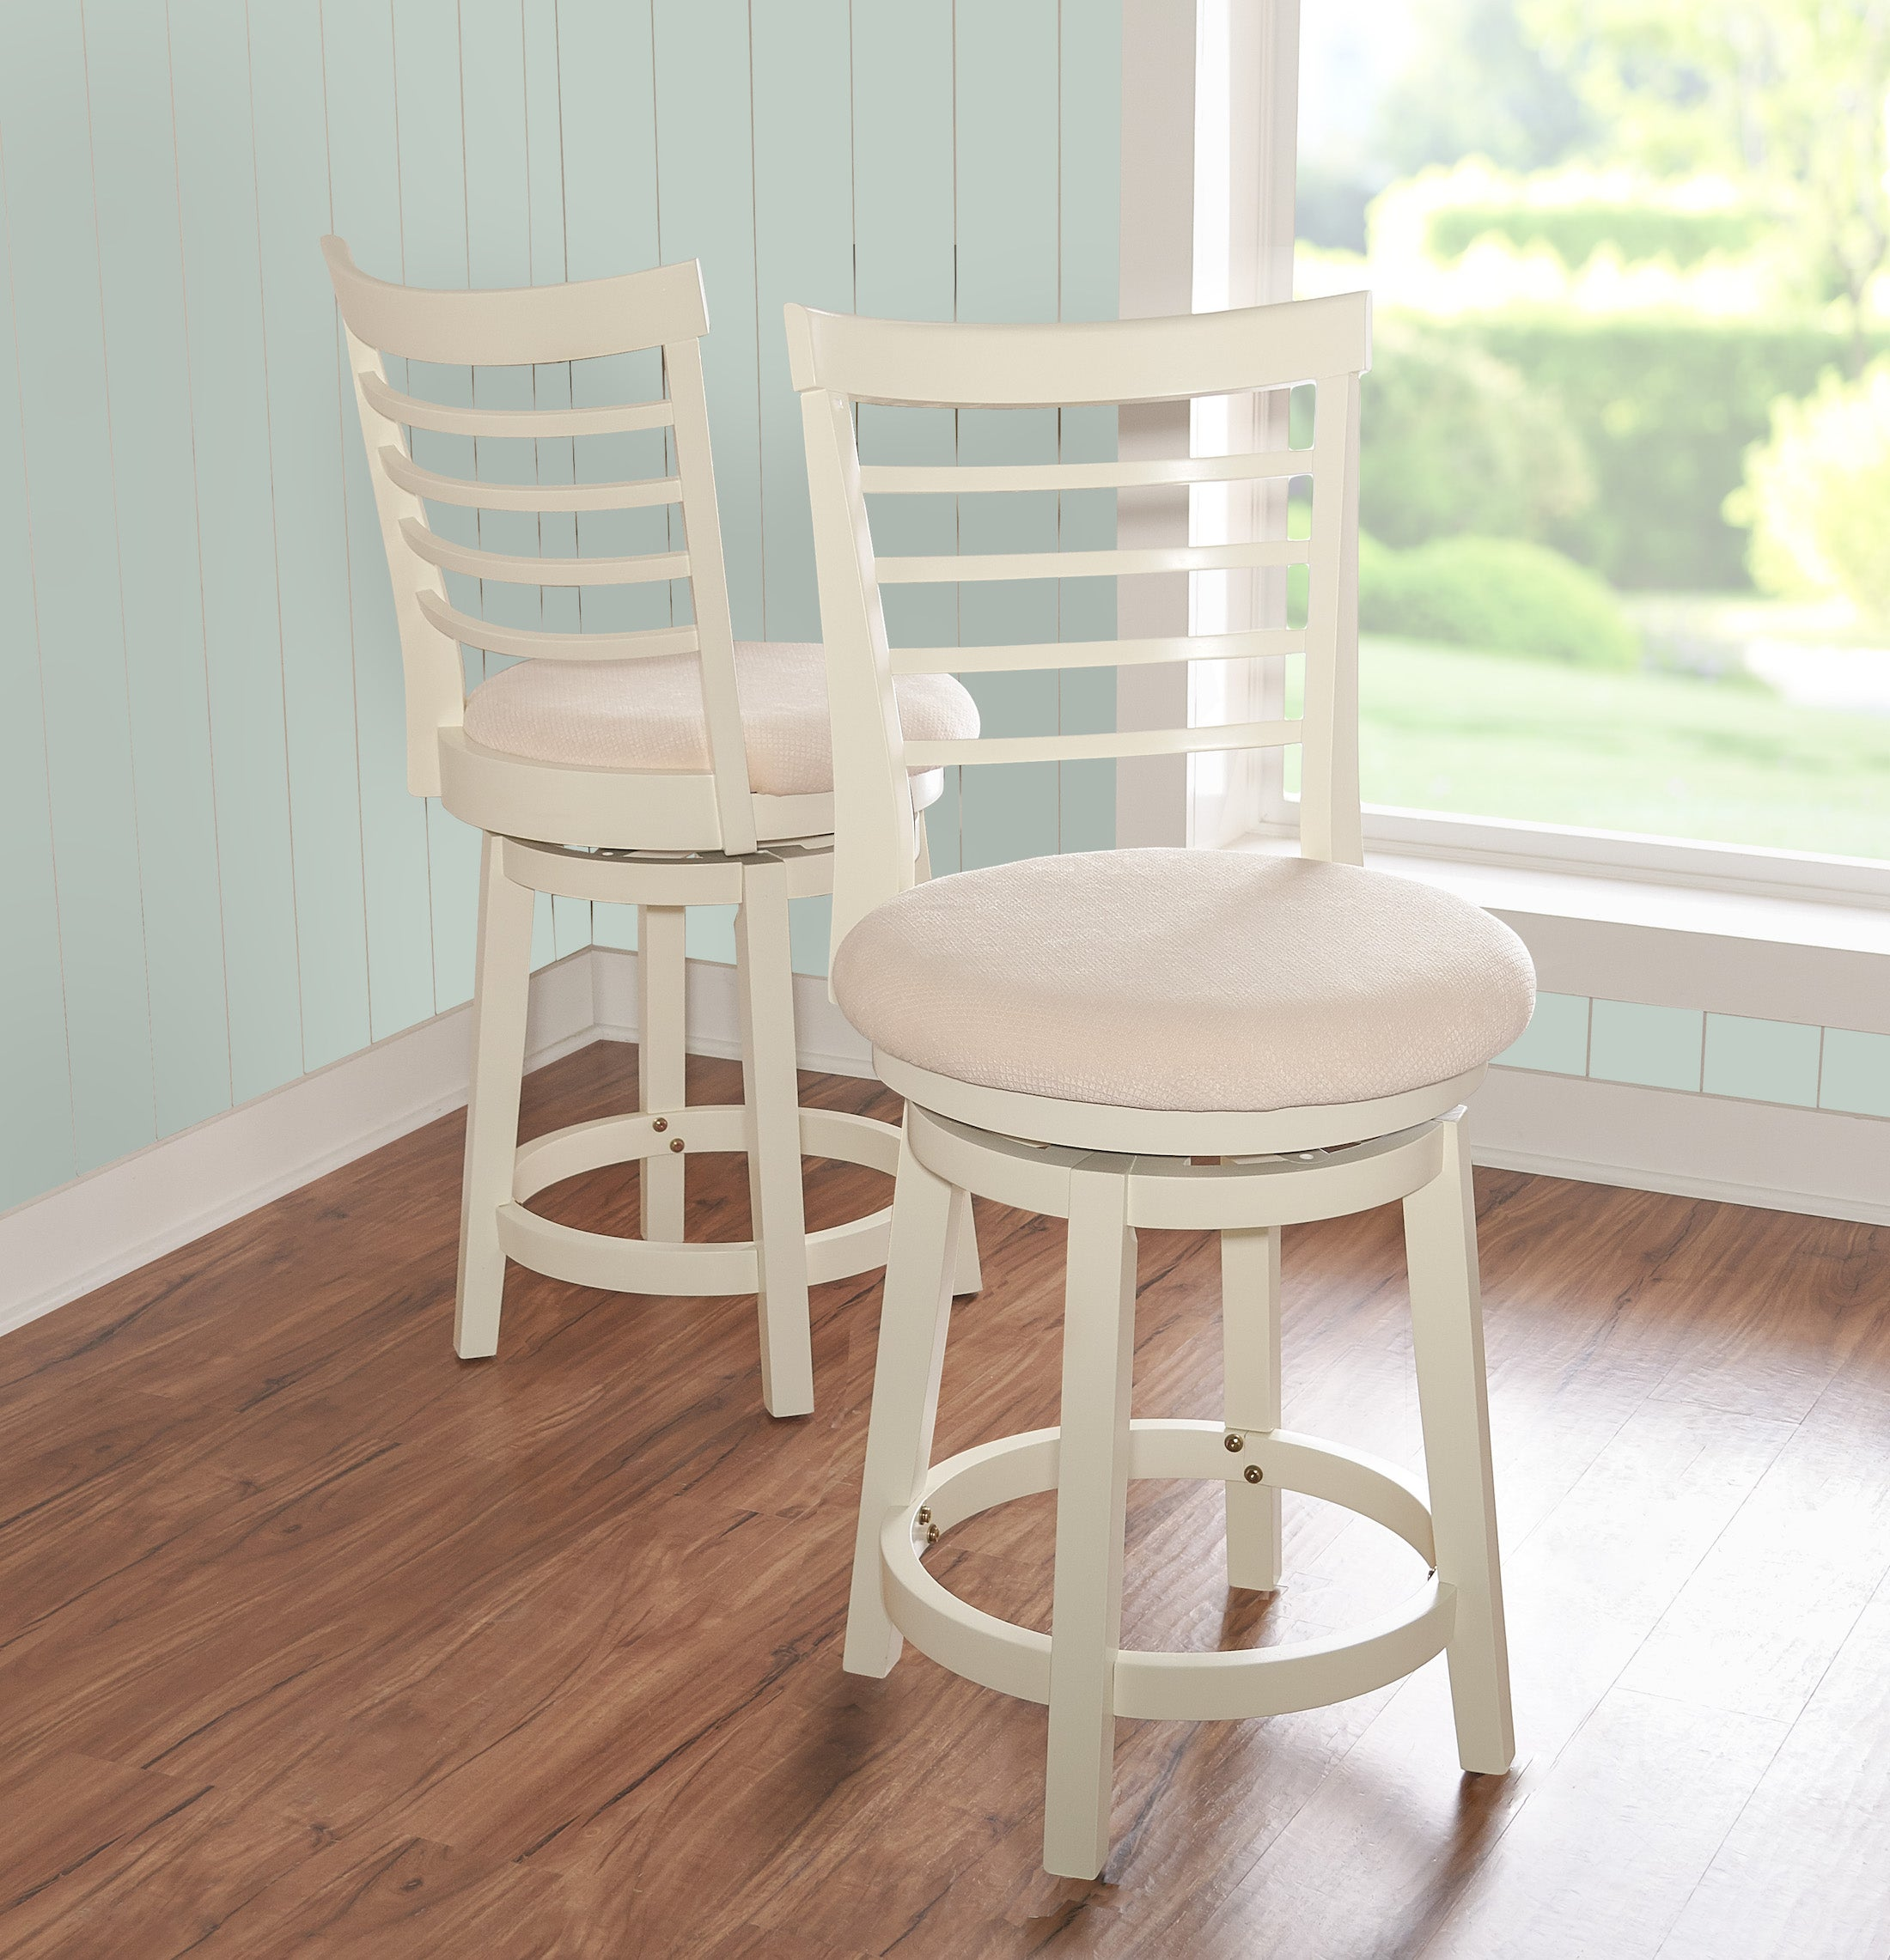 Safavieh Addo Sky Blue Ring Counterstool 16722598